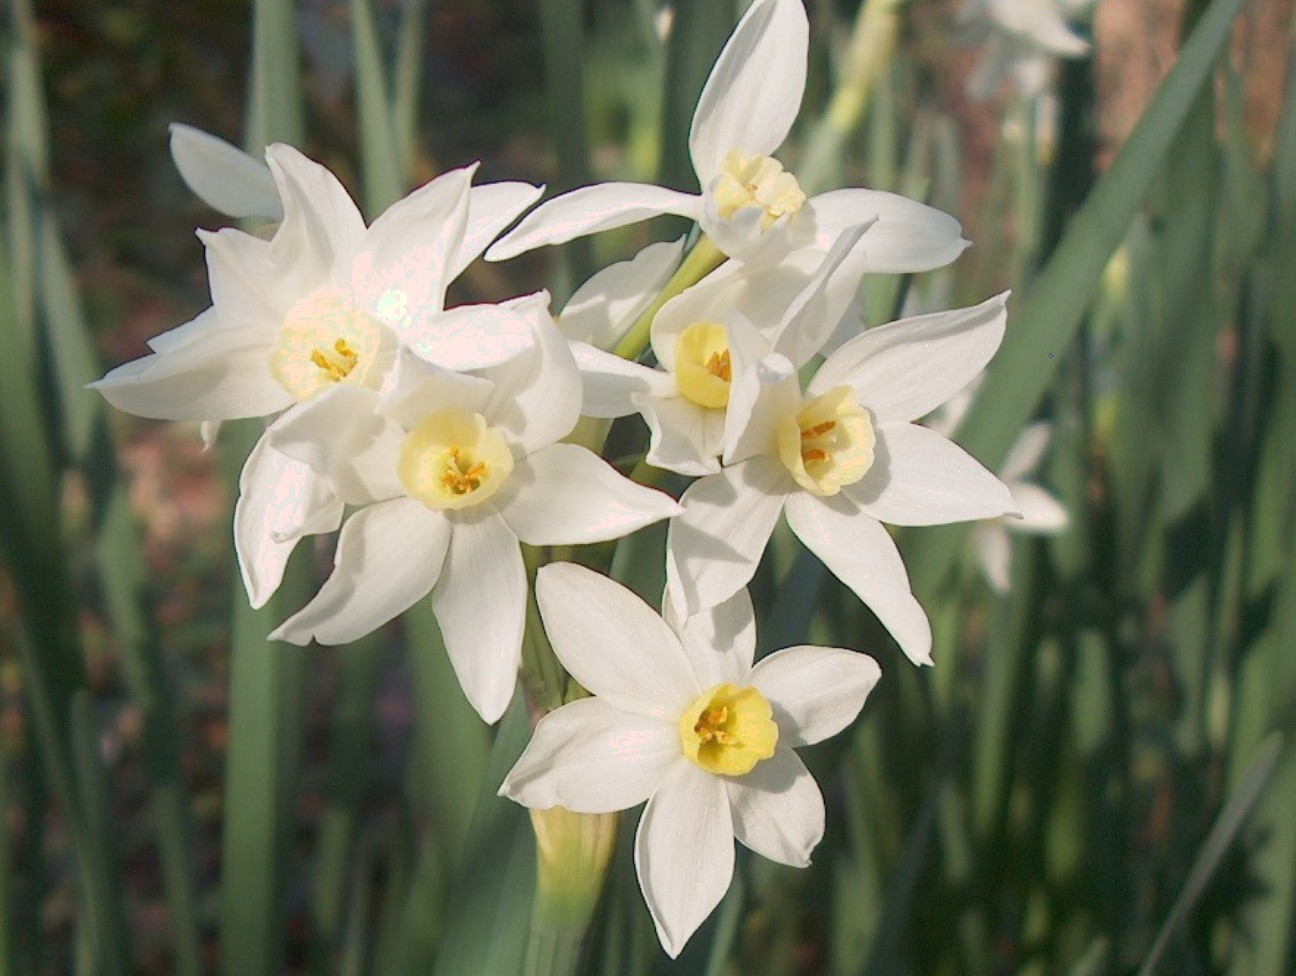 Narcissus tazetta 'Paperwhite'  / Narcissus tazetta 'Paperwhite'